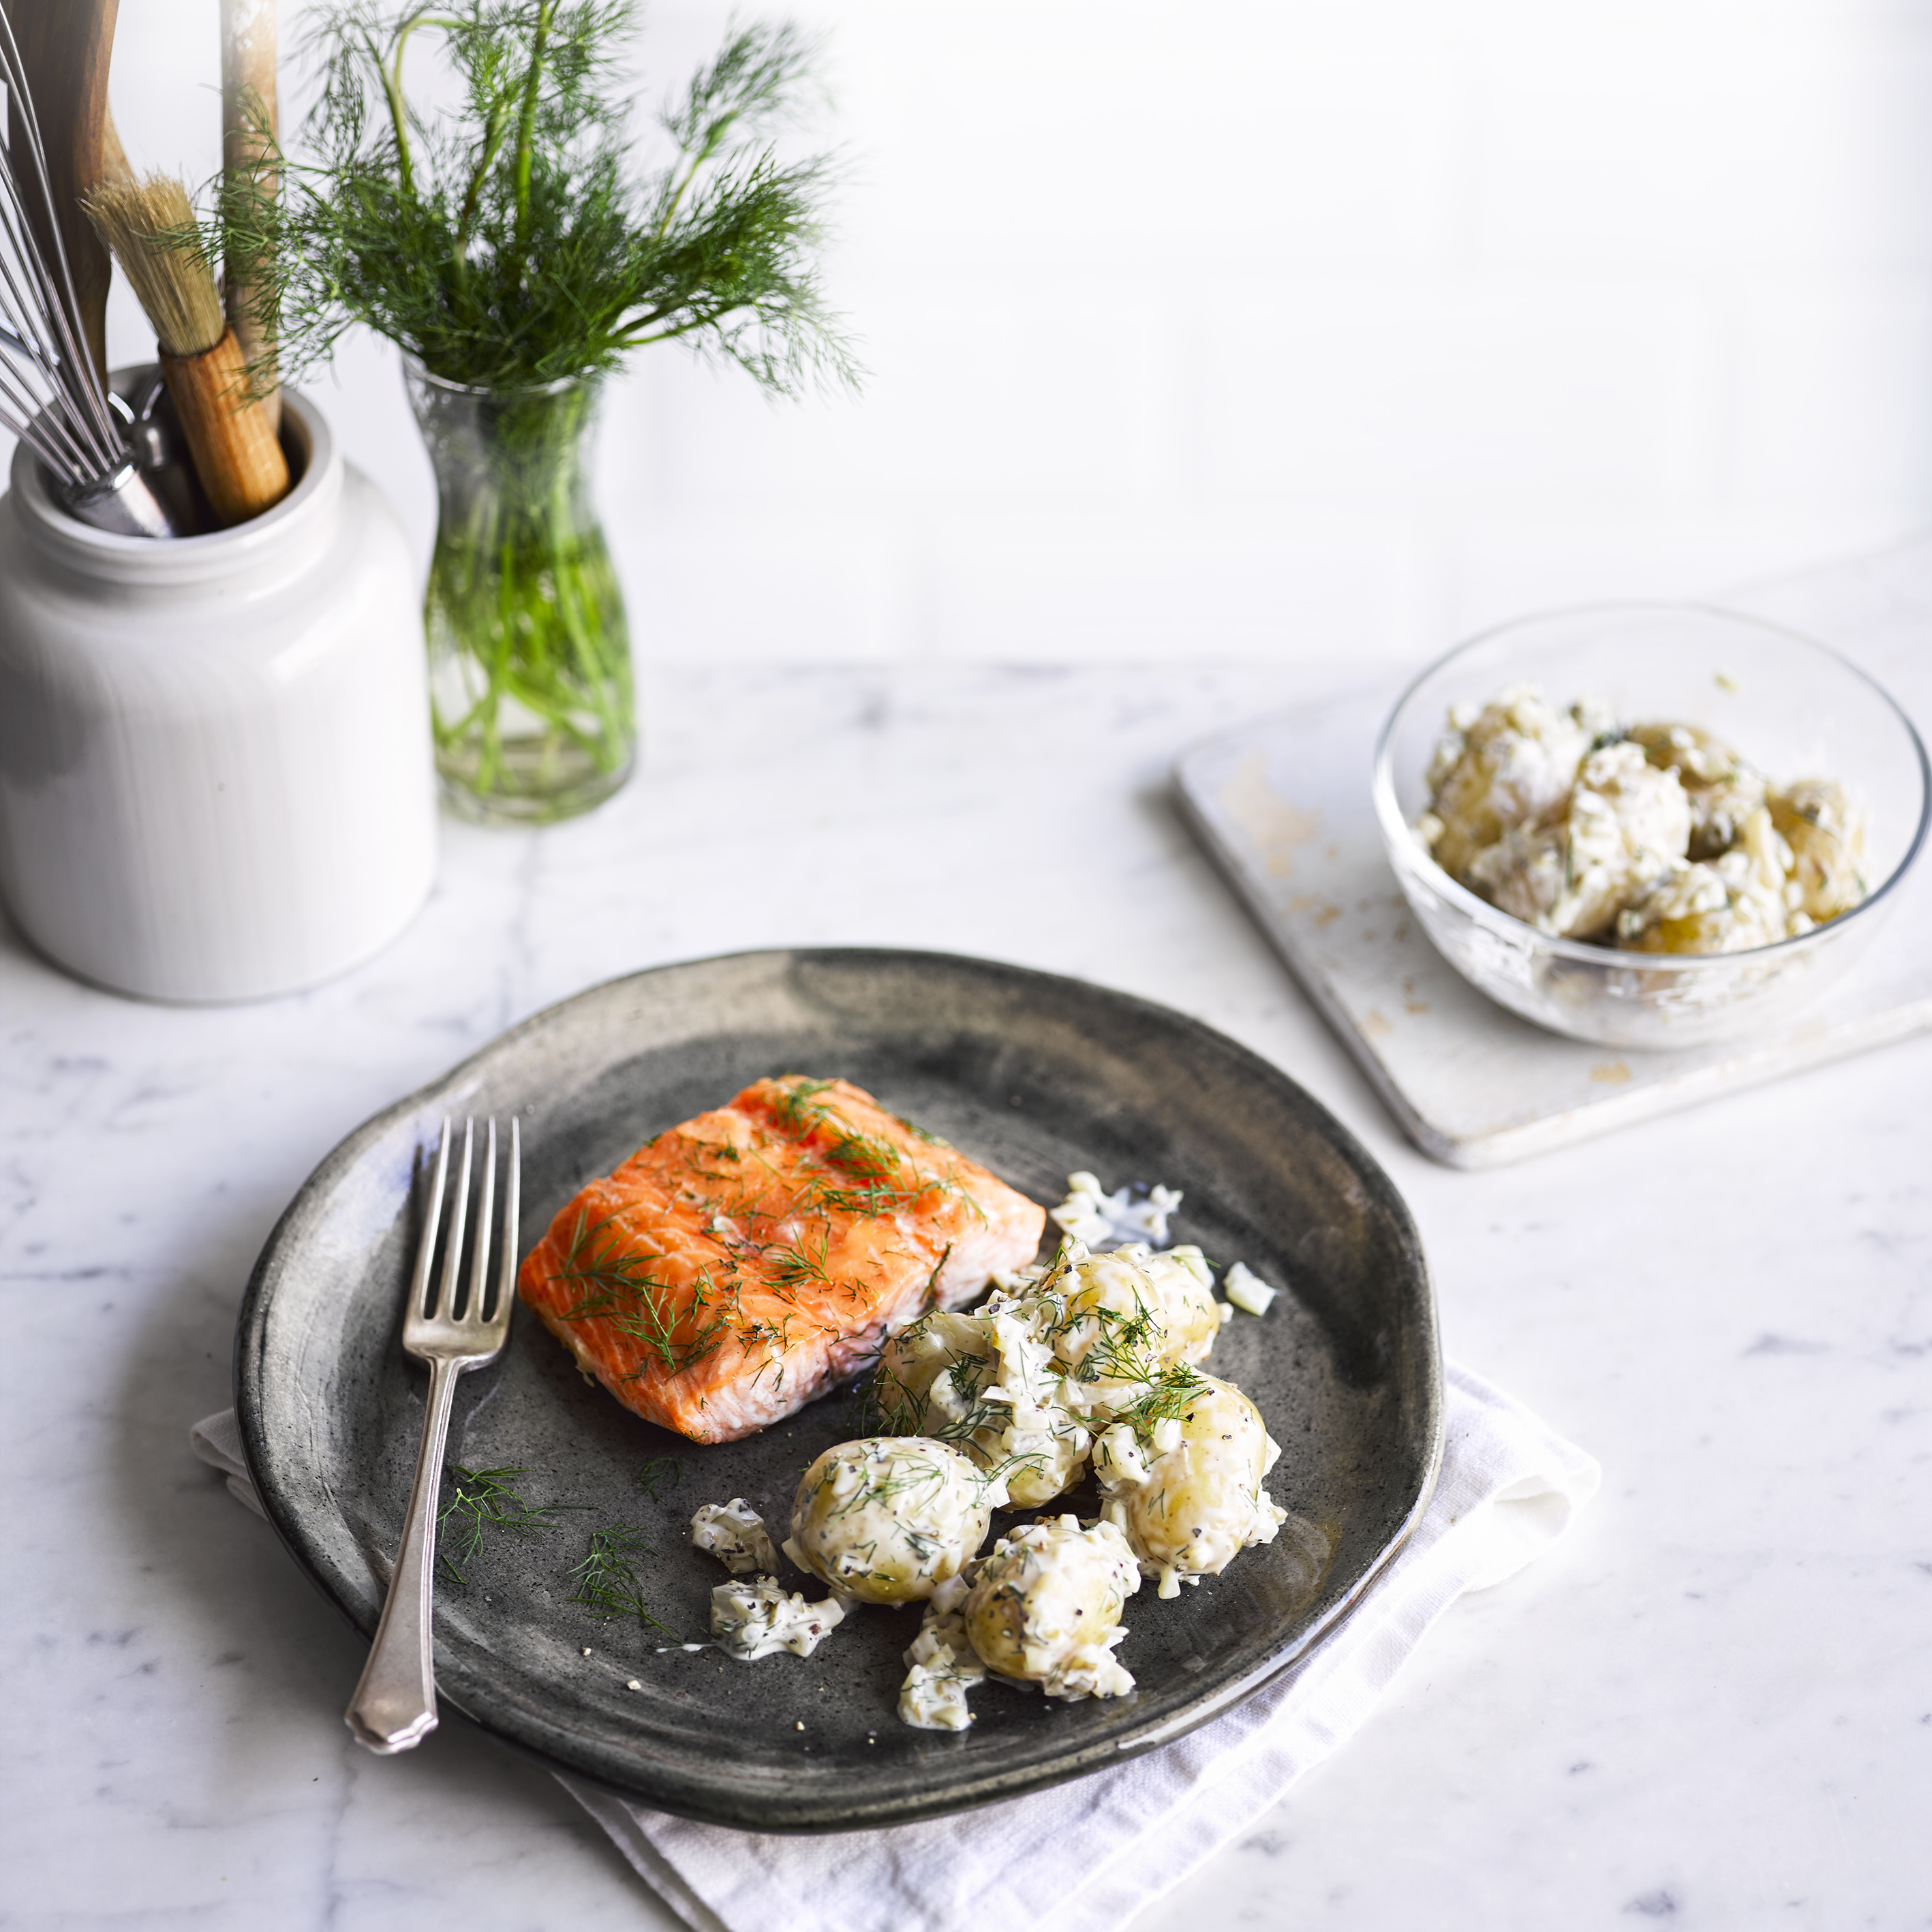 scandi-style salmon with pickle potato salad